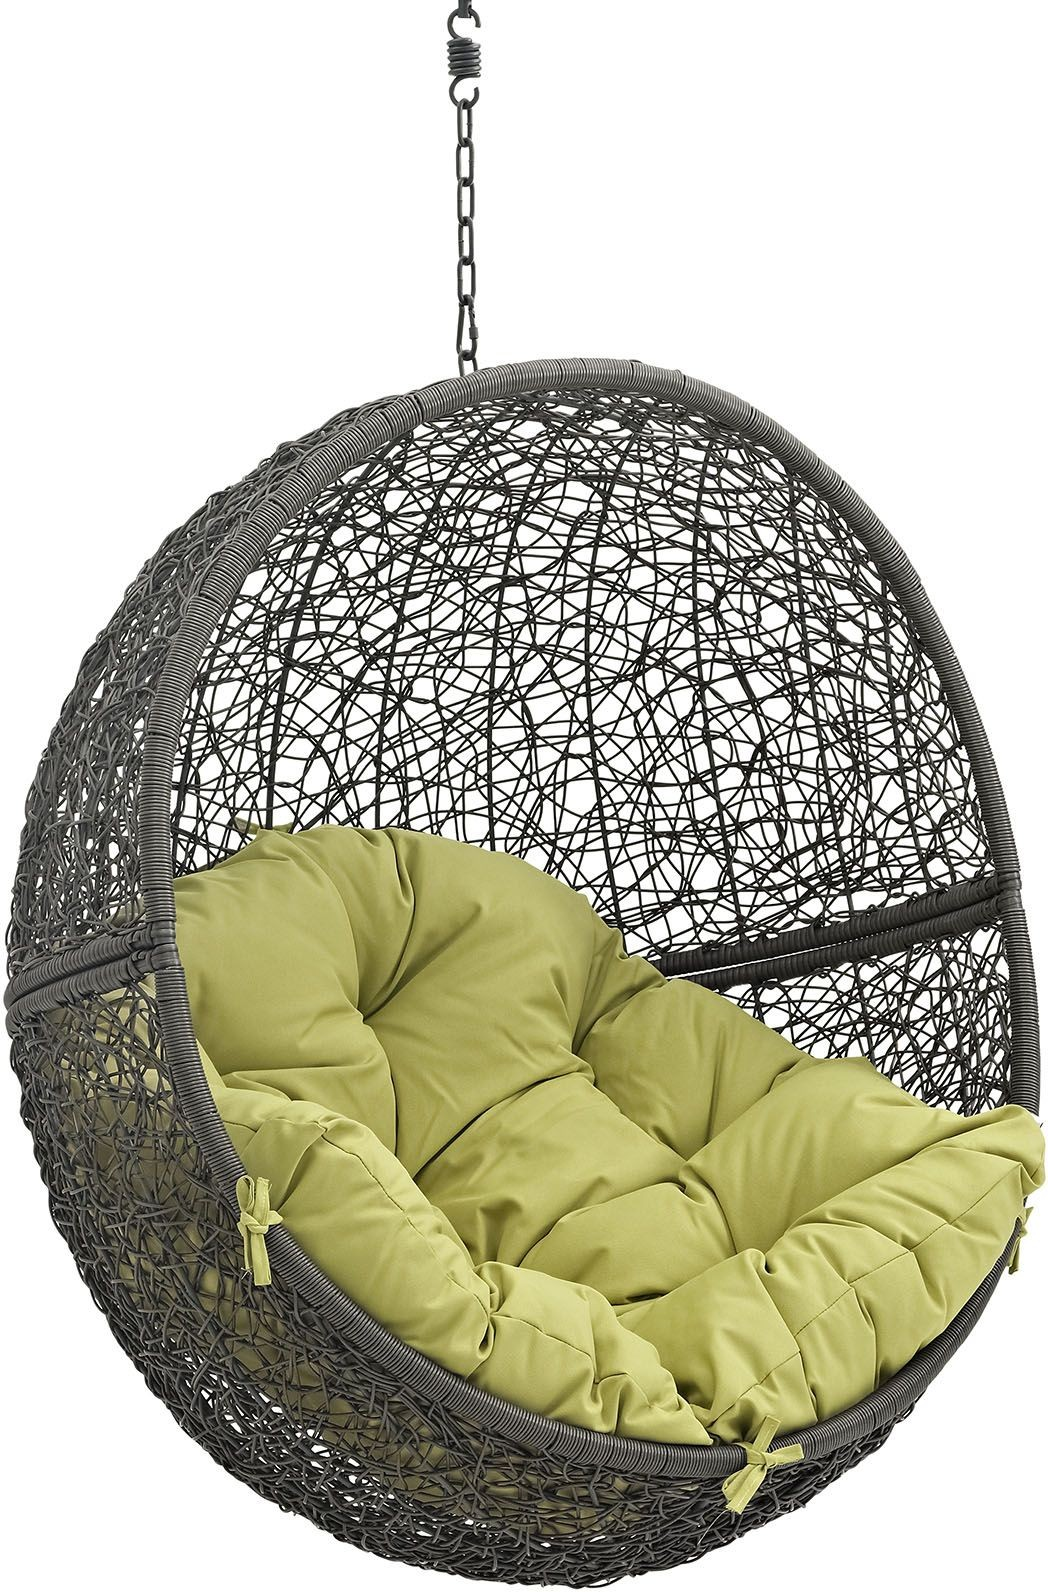 Hide Gray Peridot Outdoor Patio Swing Chair Without Stand, EEI-2654-GRY-PER, Renegade Furniture